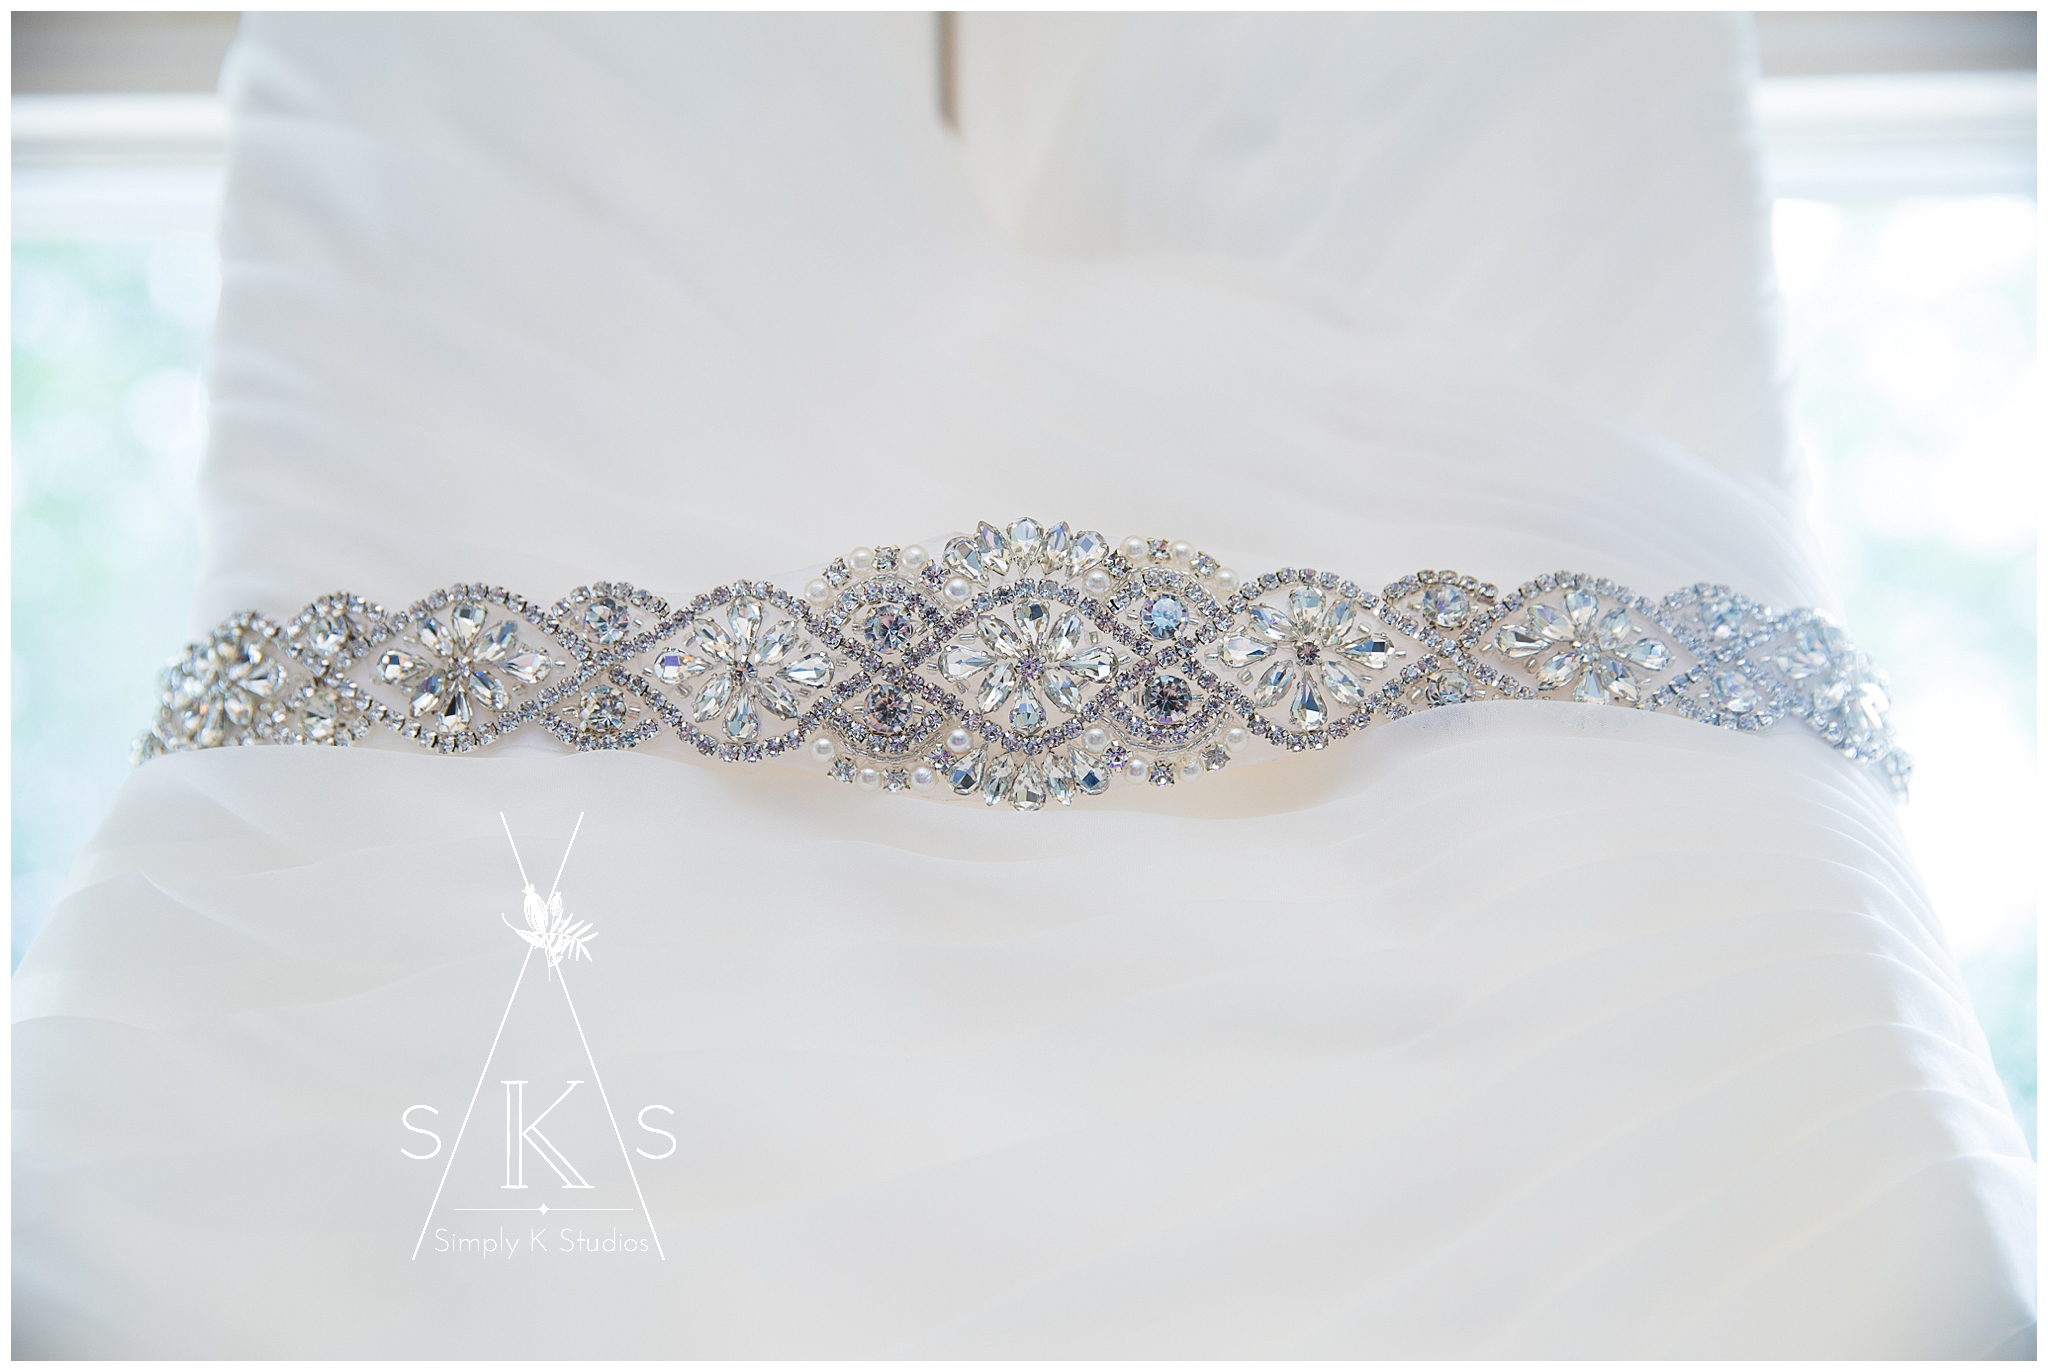 Sparkly Belt for a Wedding Dress